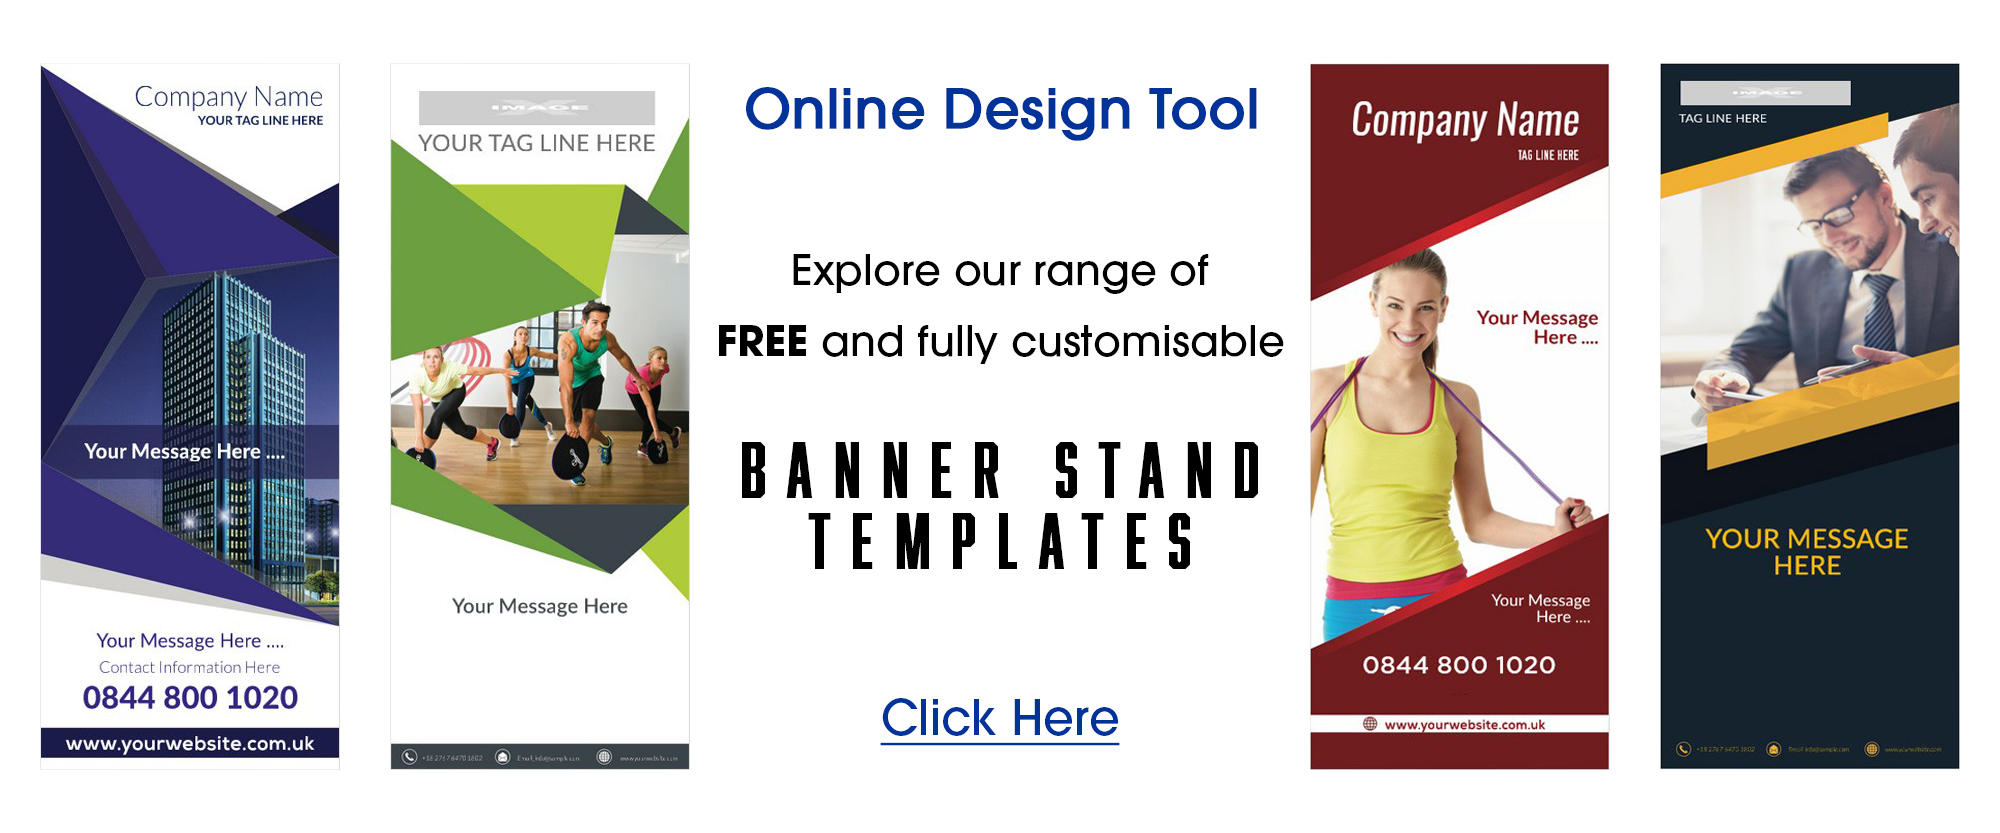 use our free banner design tool with templates